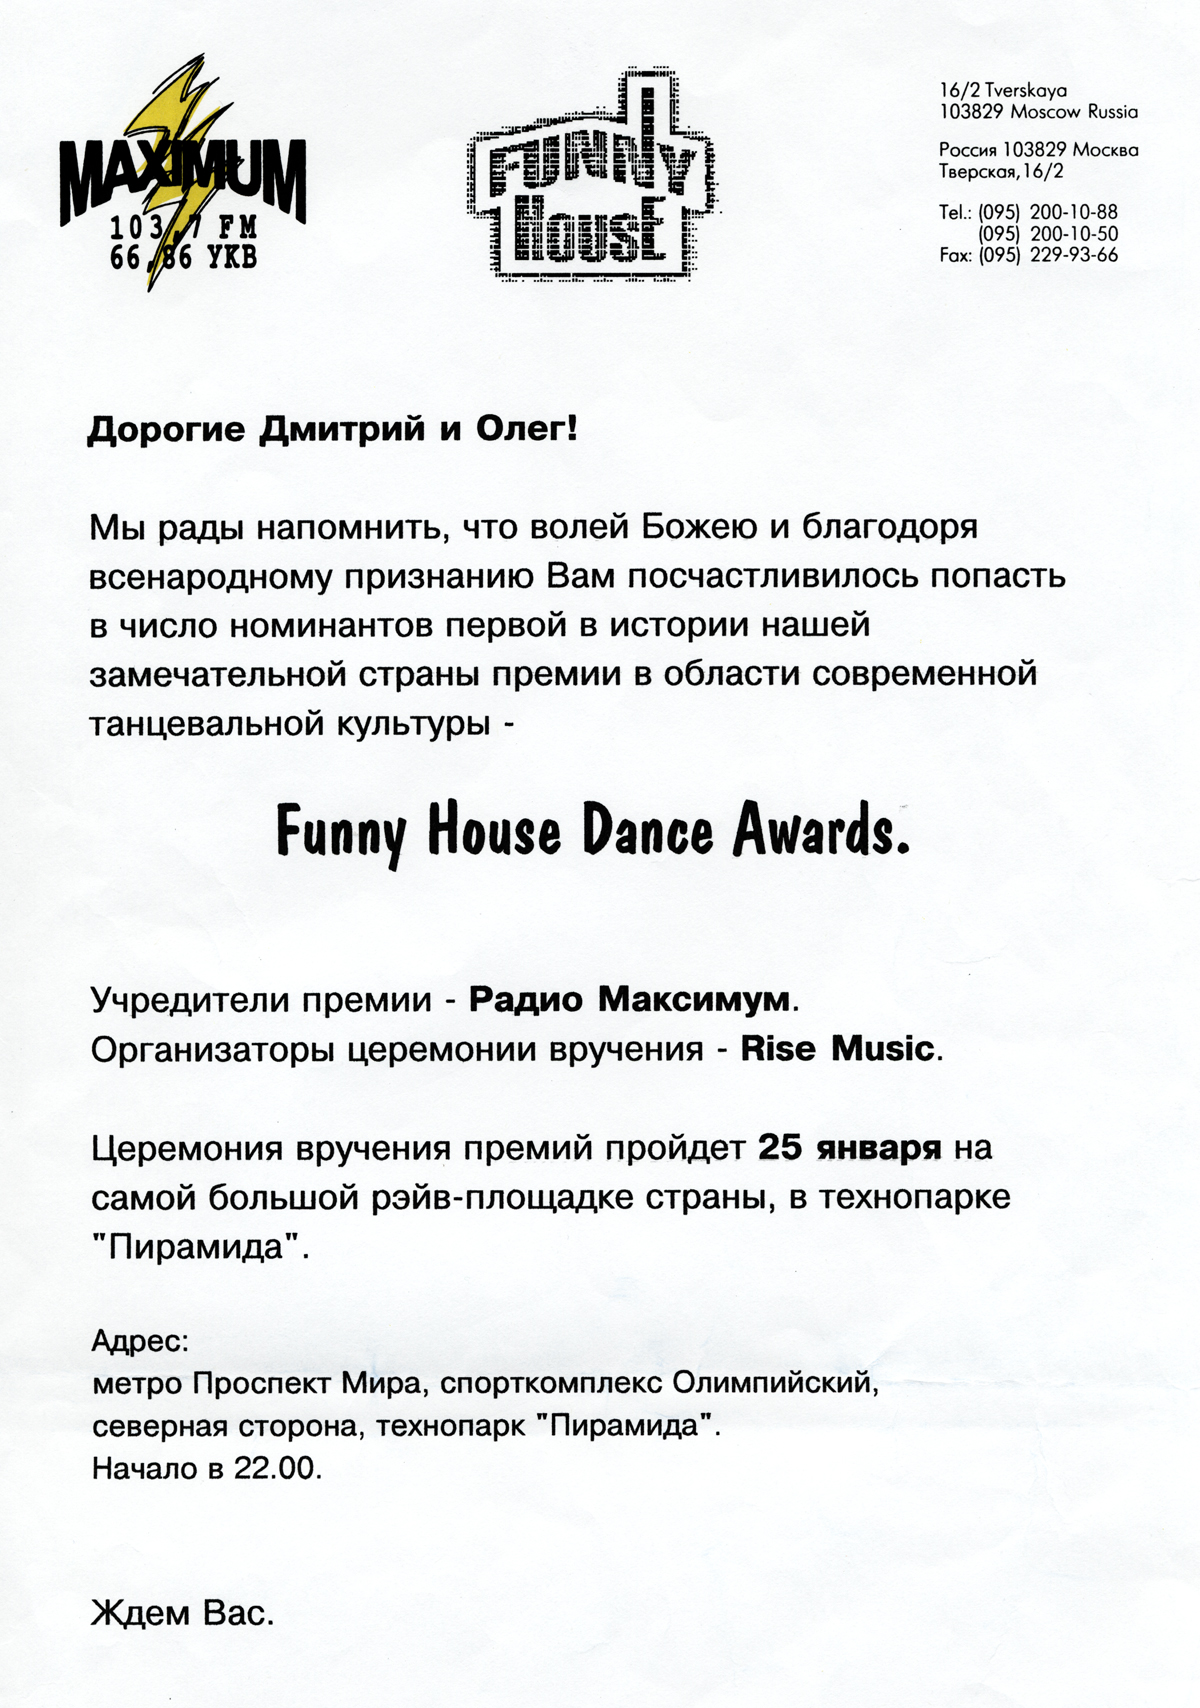 FunnyHouse-02.jpg